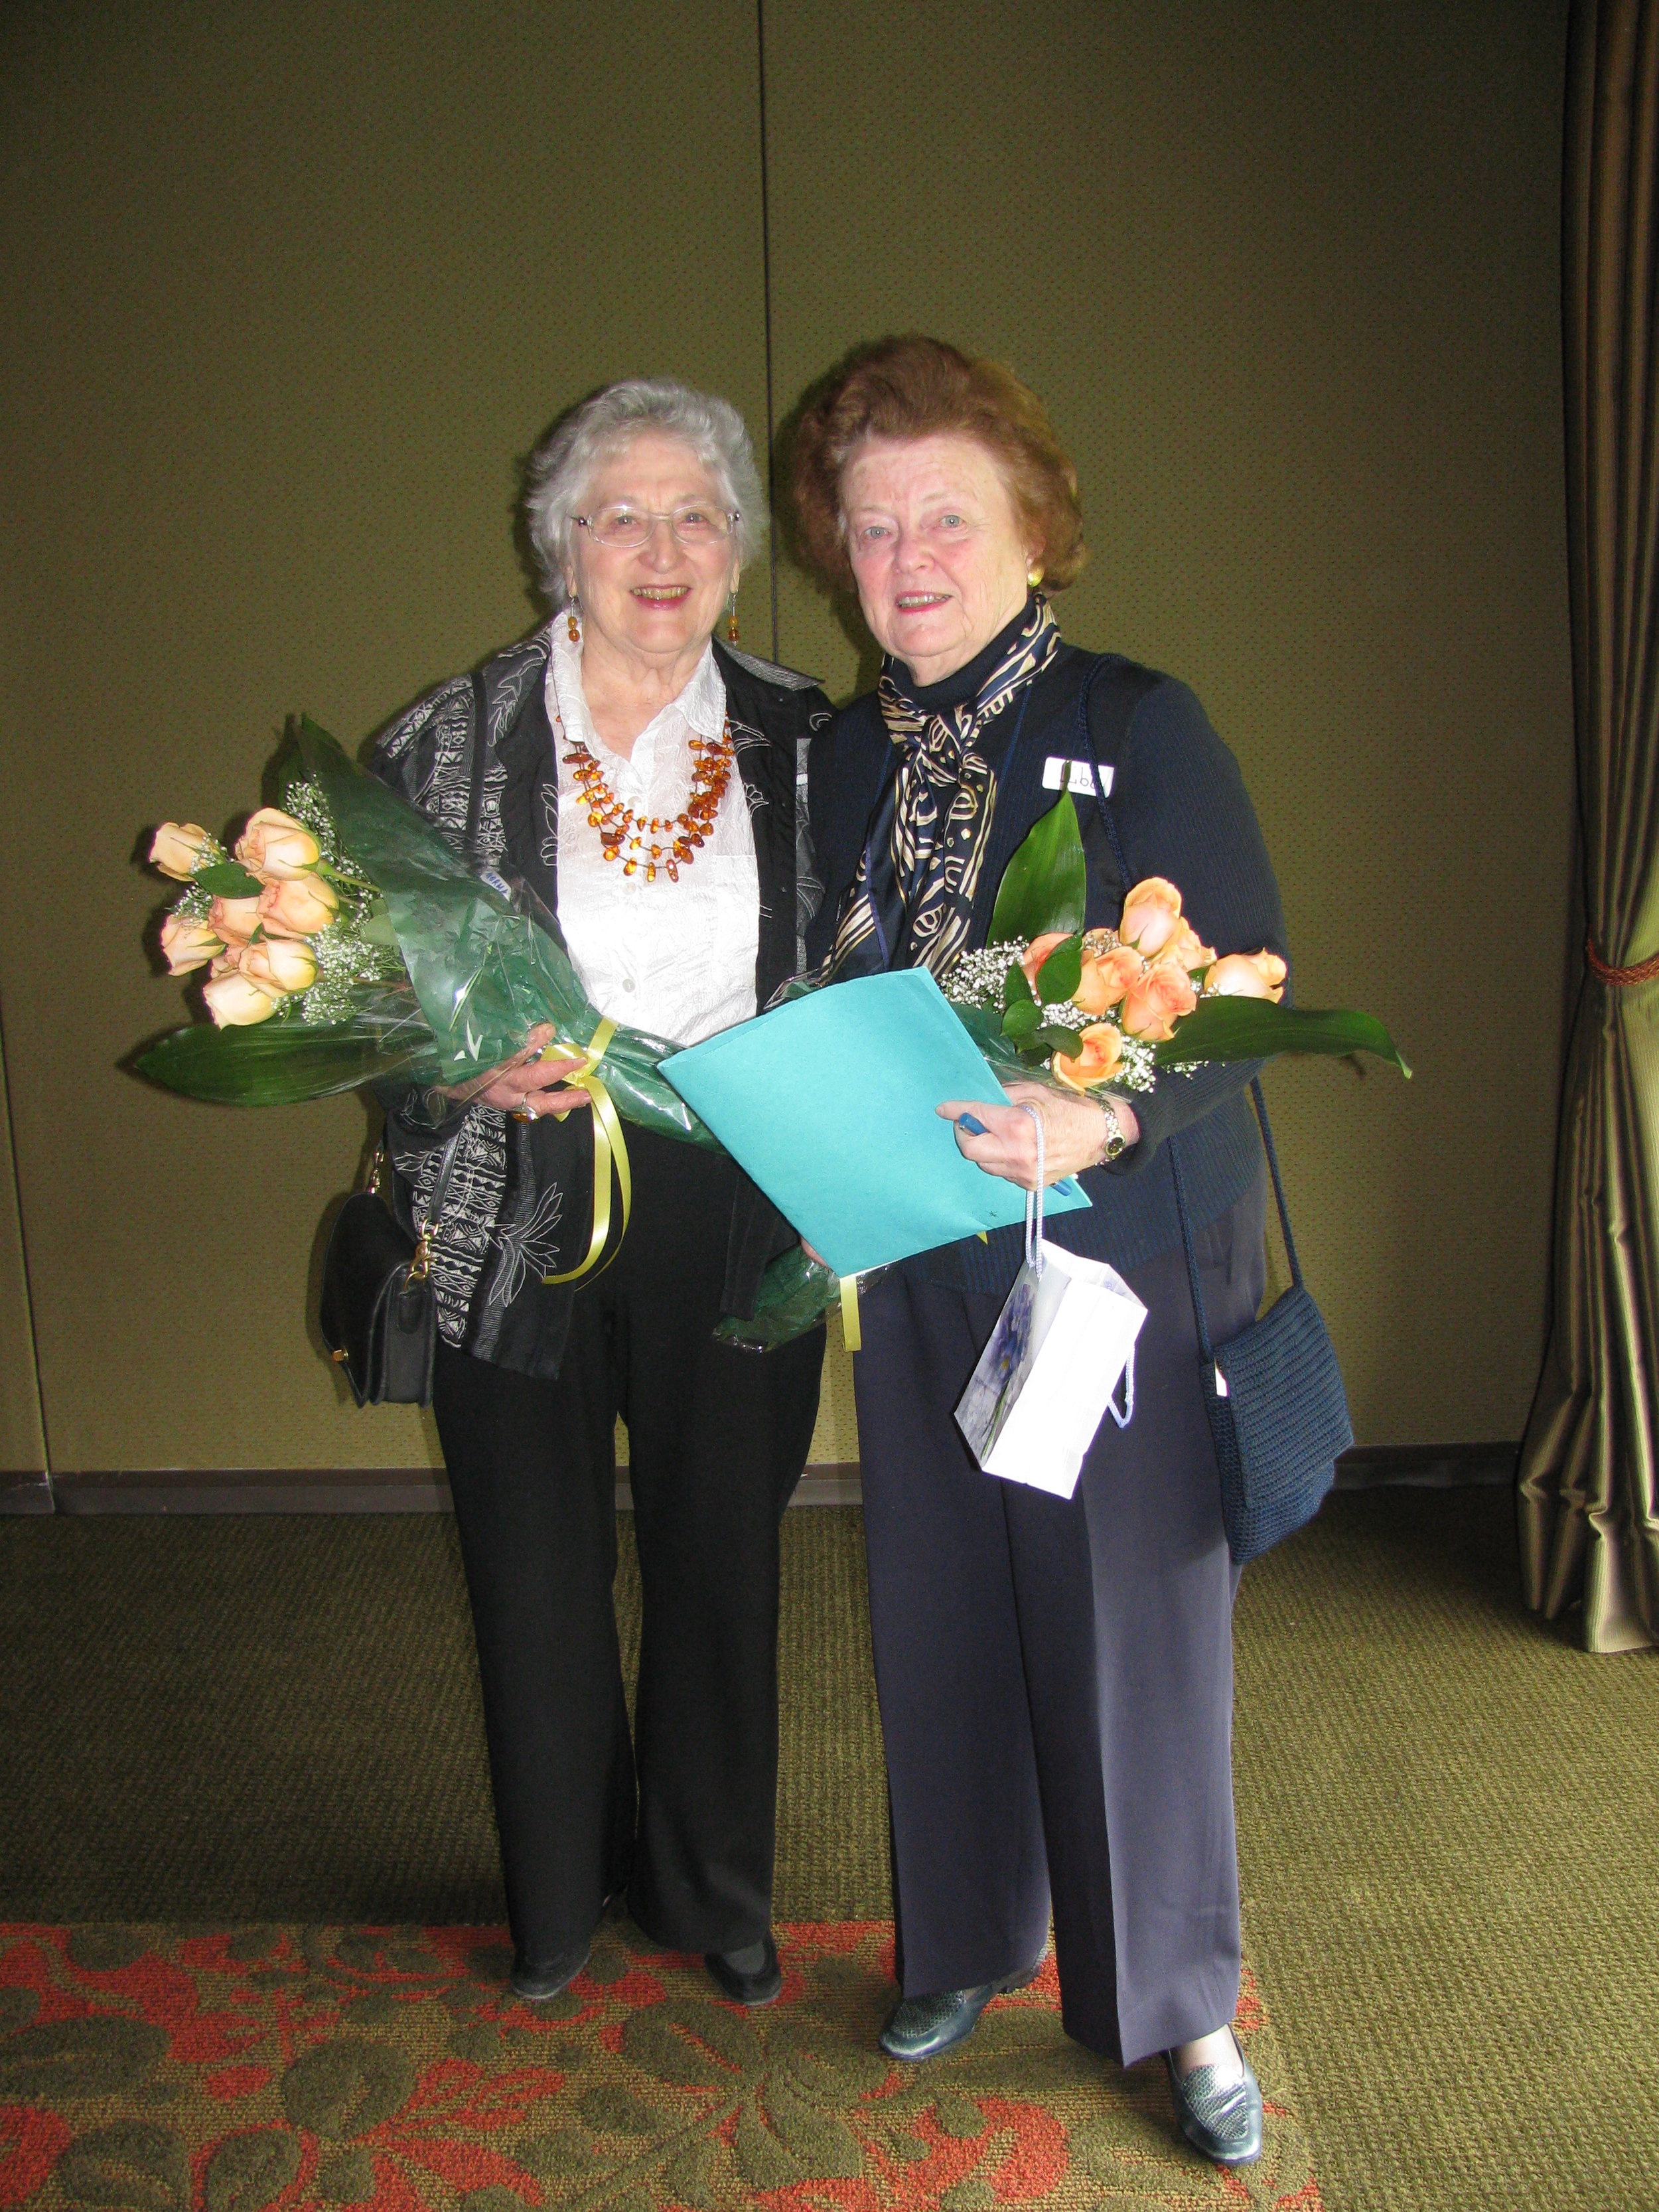 Norma Satten and libby denebeim - JCEHT's co-founders